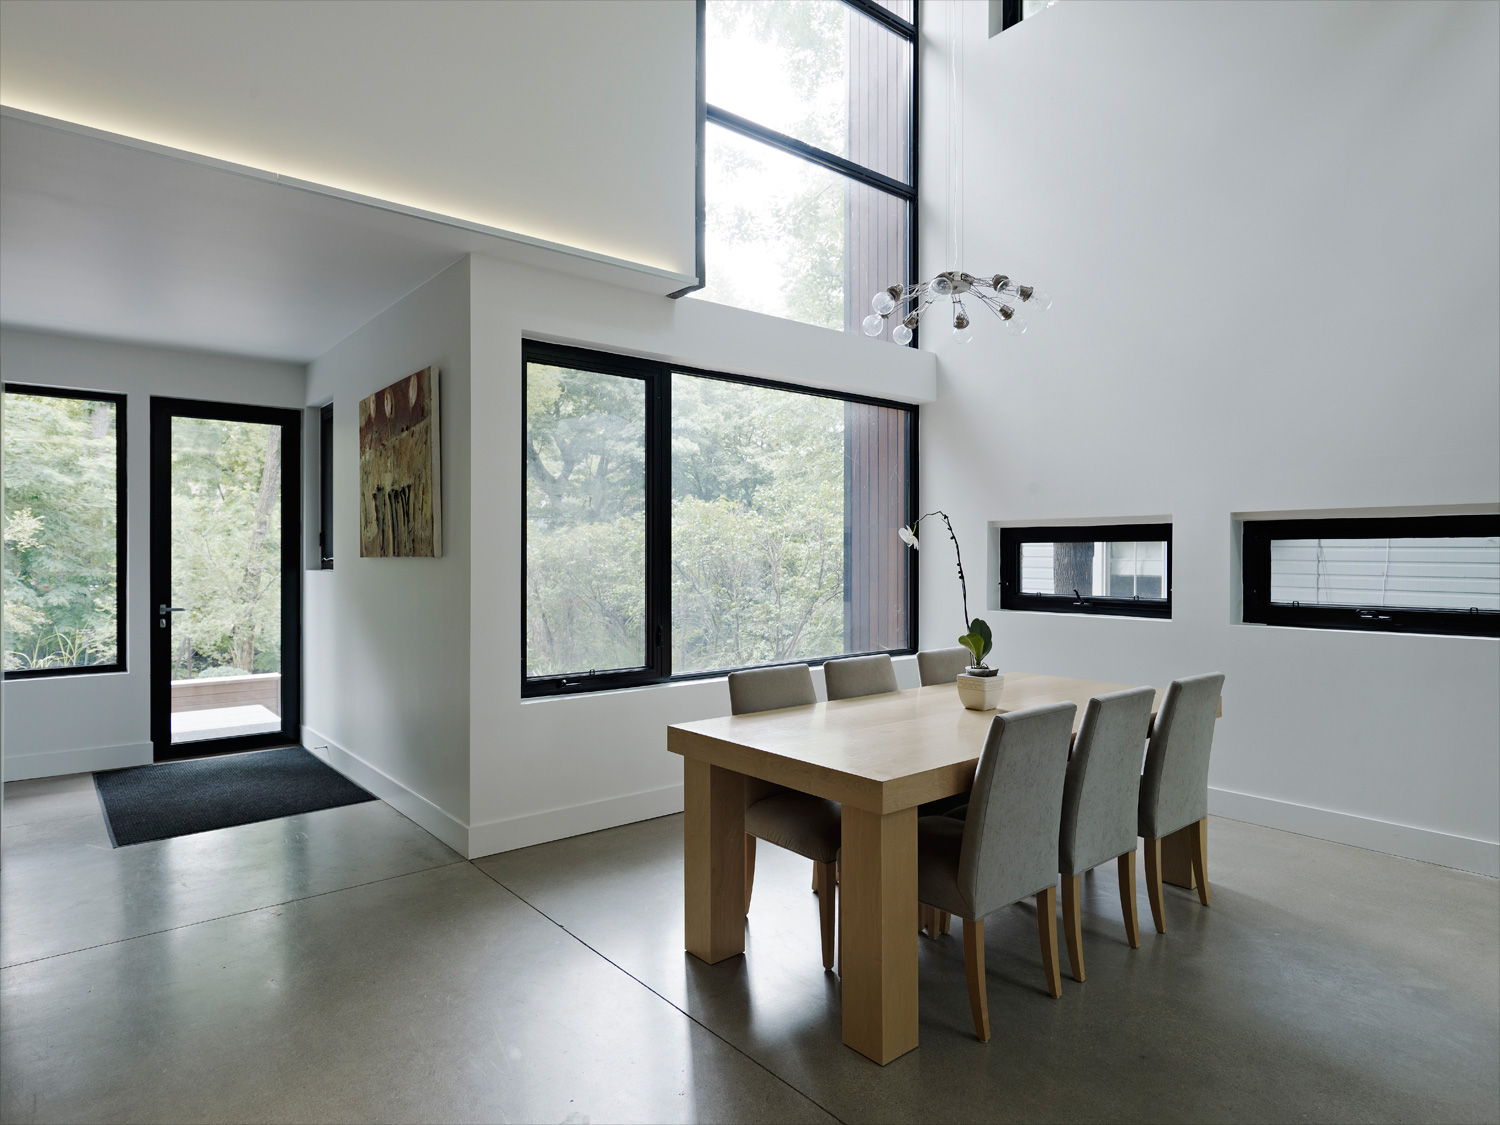 Double height dining room with modern dining room set and polished concrete floors with expansive views